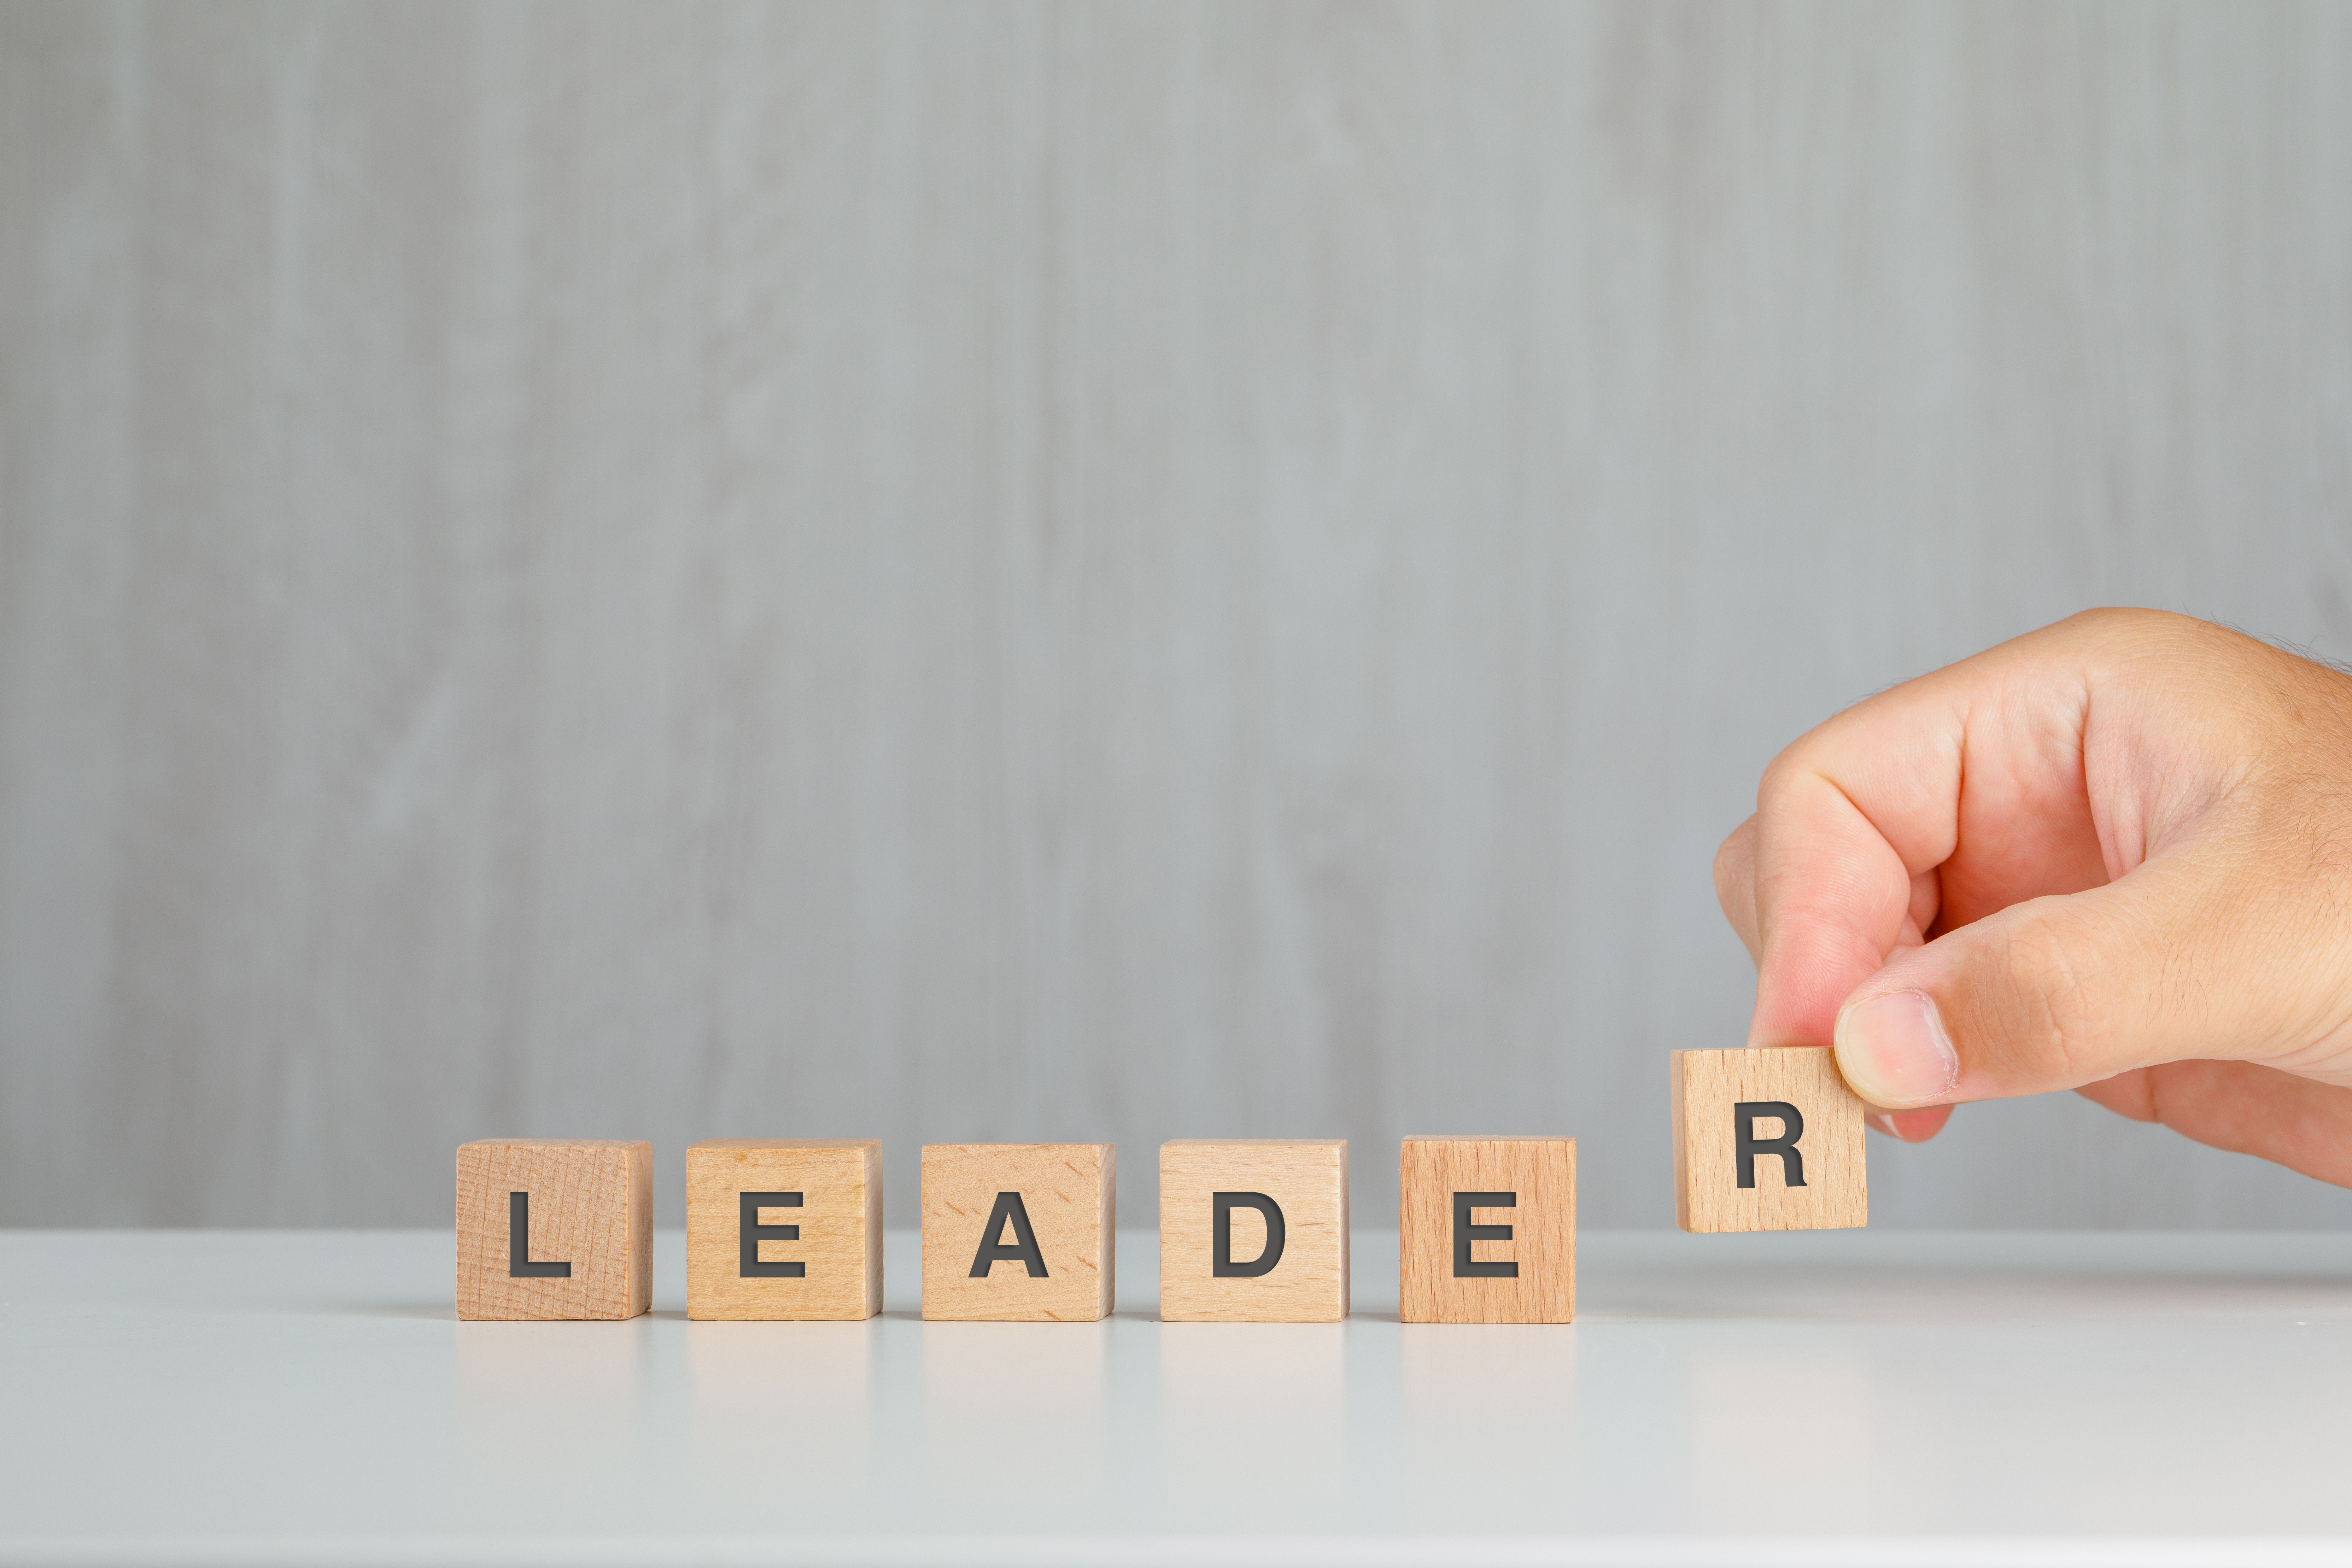 How Leaders bring integrity of teams with customers